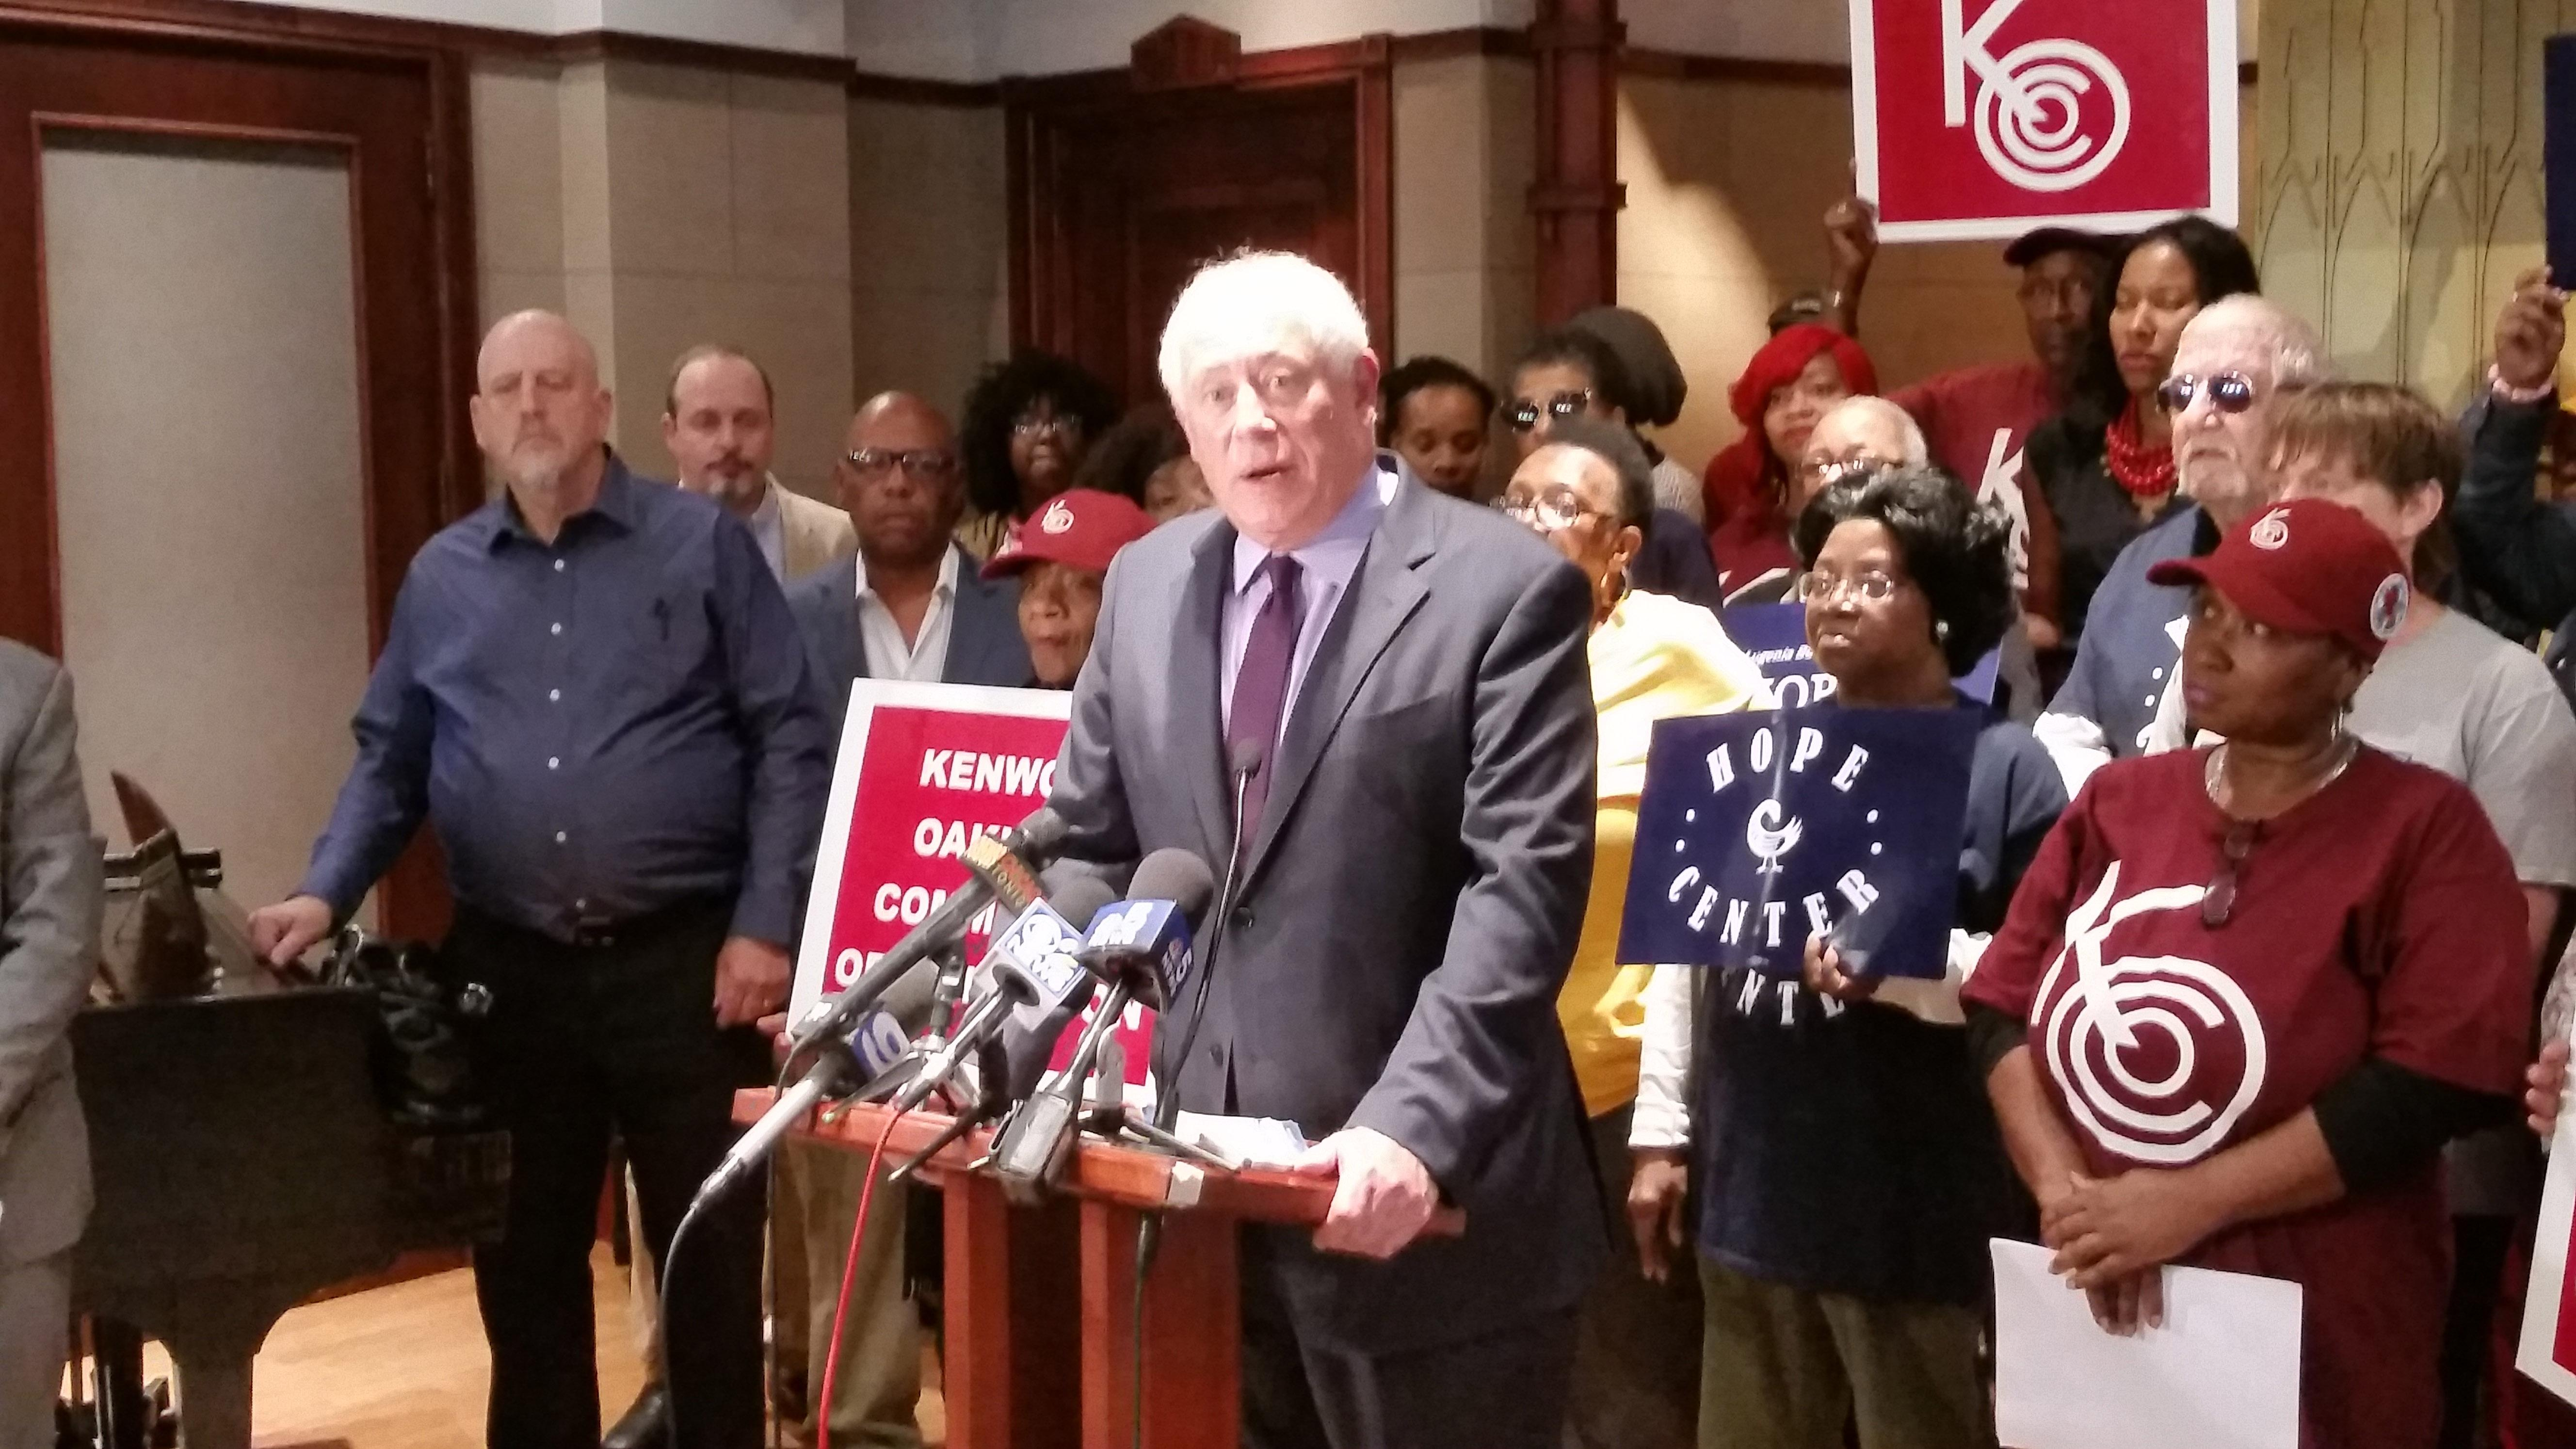 Former Gov. Pat Quinn is one of seven plaintiffs in a pair of civil suits filed this week calling for an end to mayoral control of the Chicago Board of Education. (Matt Masterson / Chicago Tonight)